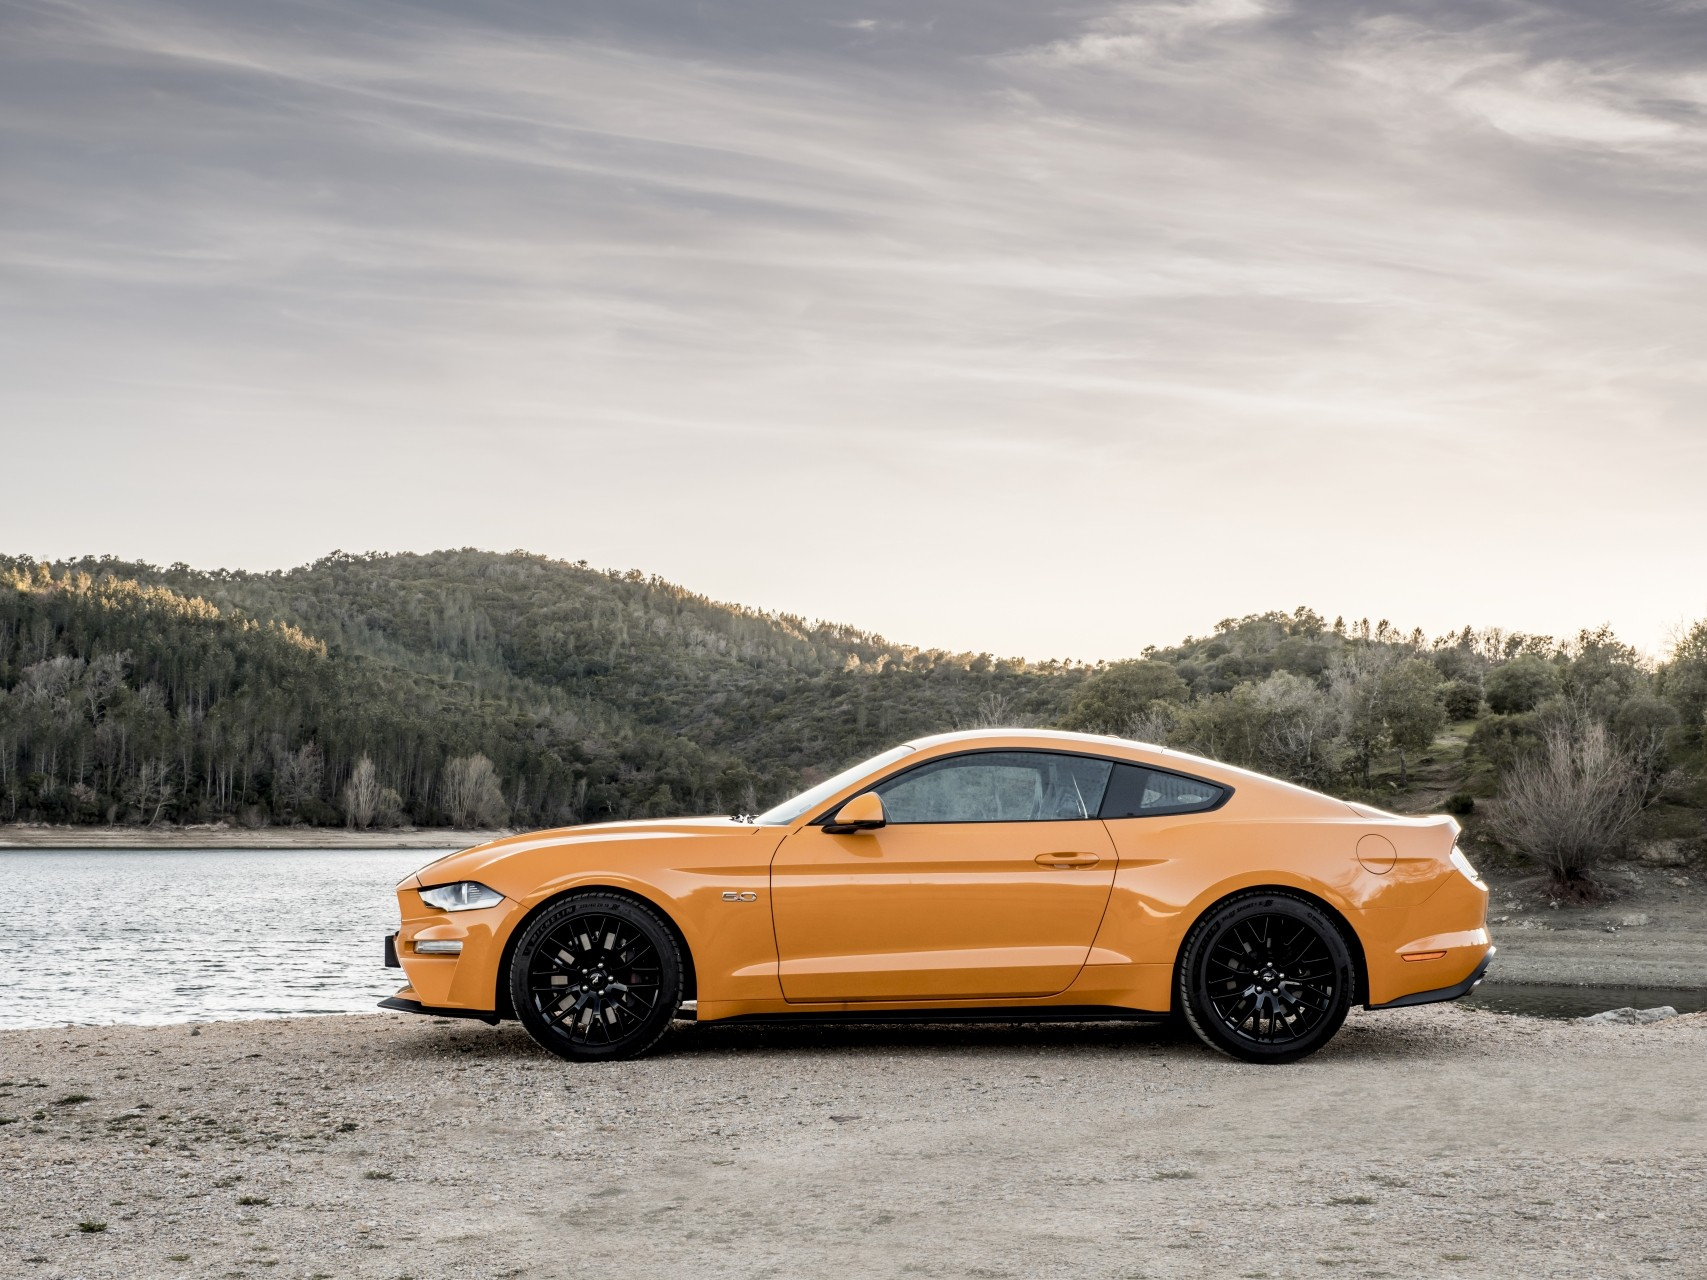 Mustang 2018 Ecoboost >> Driven: 2018 Ford Mustang GT and EcoBoost (European Version) - autoevolution